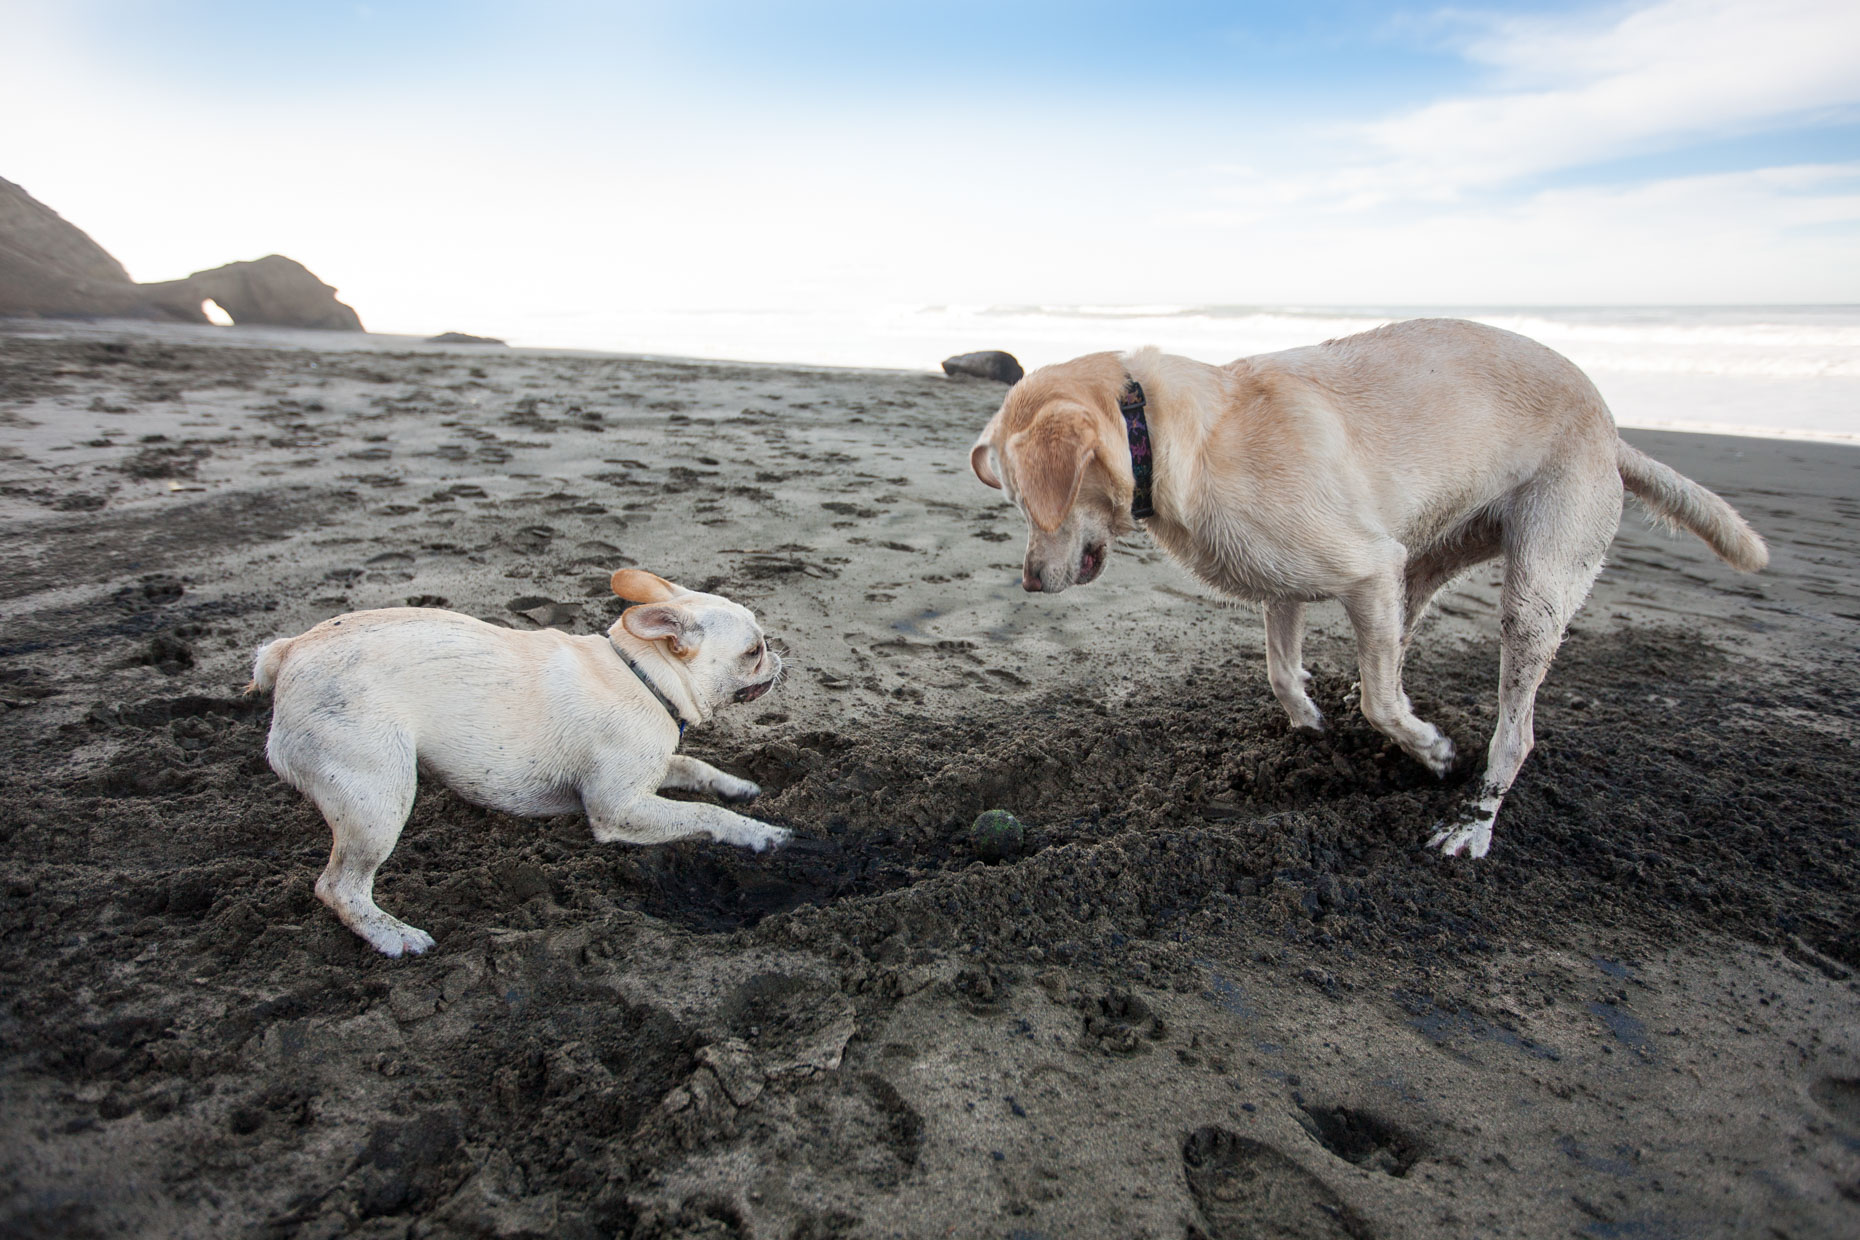 Dog Photography | Two Dogs Playing on Beach by Mark Rogers